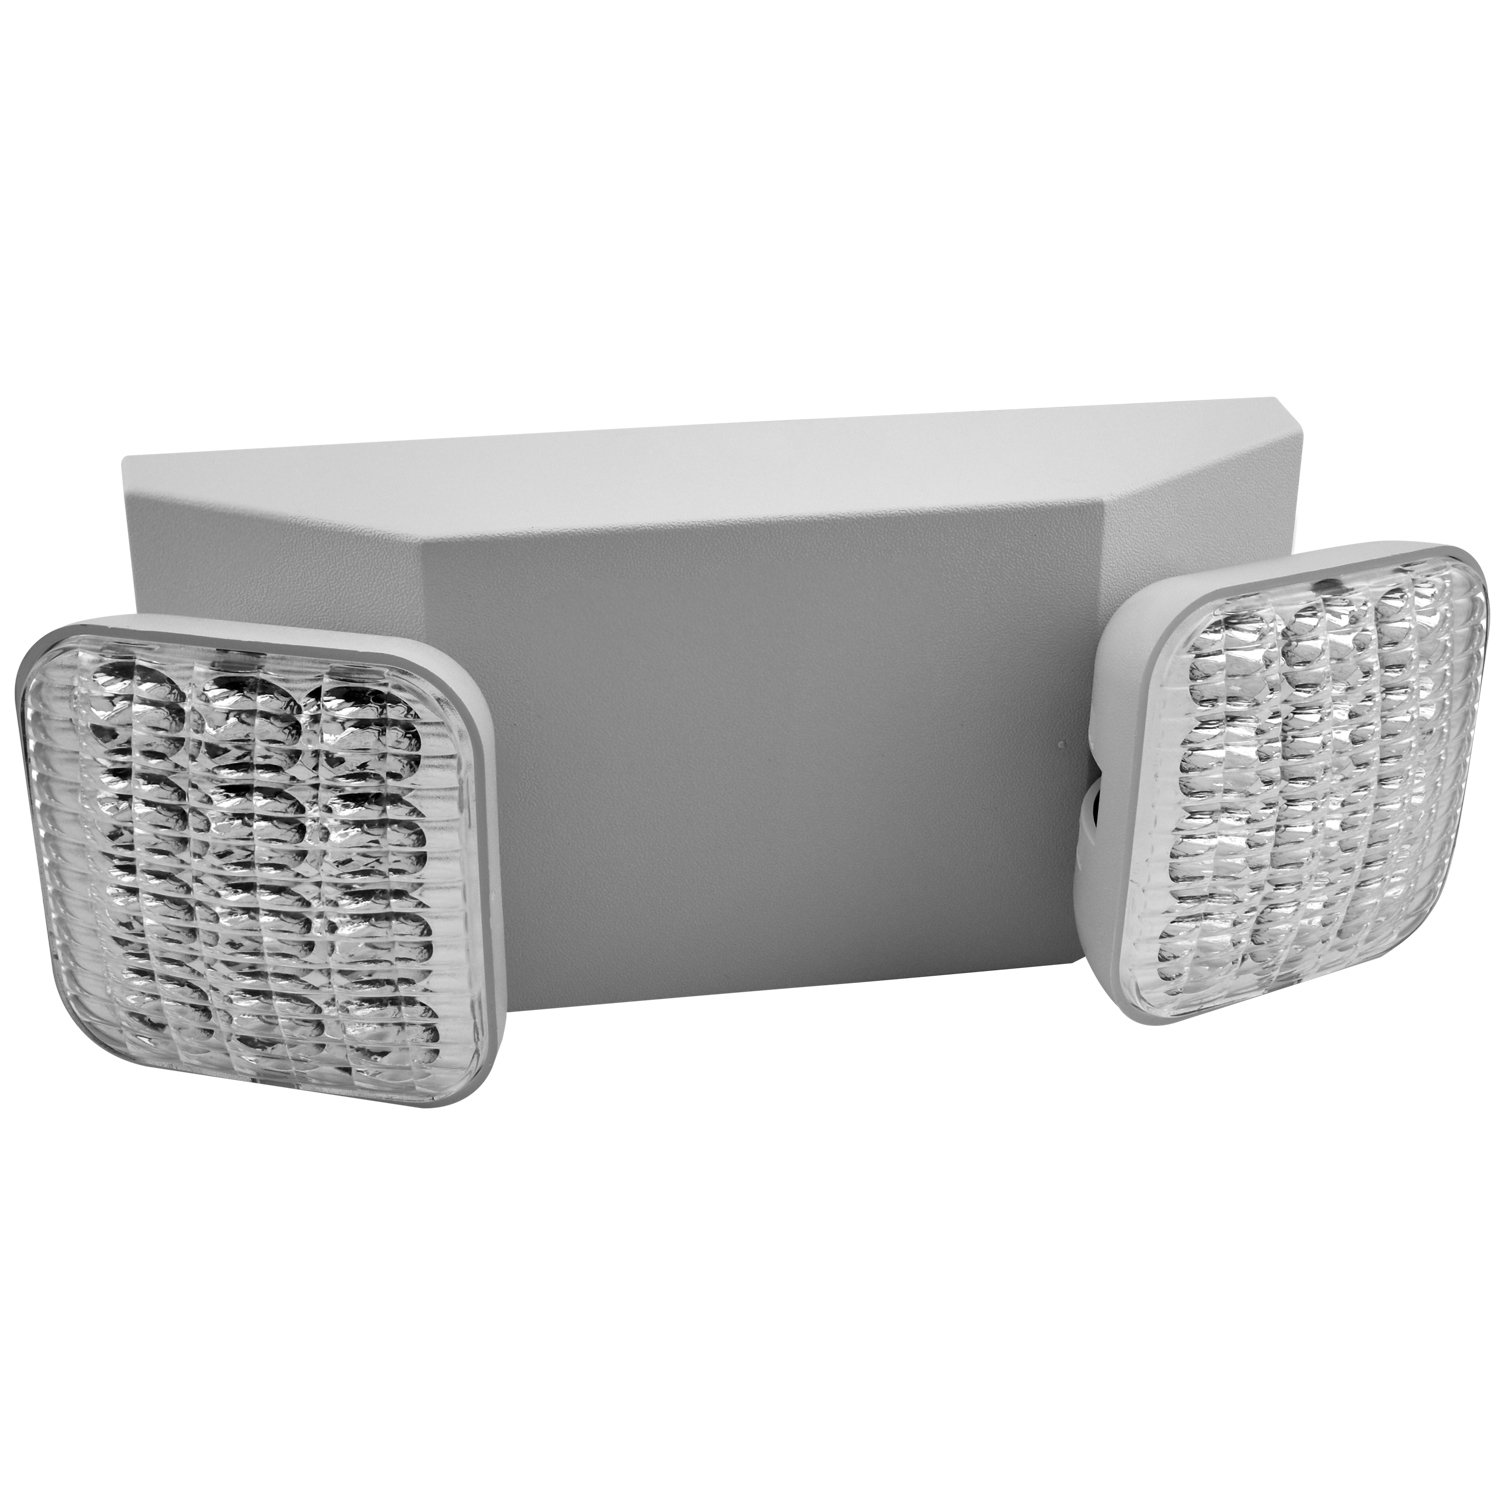 6 Pack - 2 HEAD LED EMERGENCY LIGHT WITH DEPENDABLE BATTERY BACK-UP (White Body Housing) - Duel 120/277v - Meets UL924, NFPA 101 Life Safety Code, 5 Year Warranty